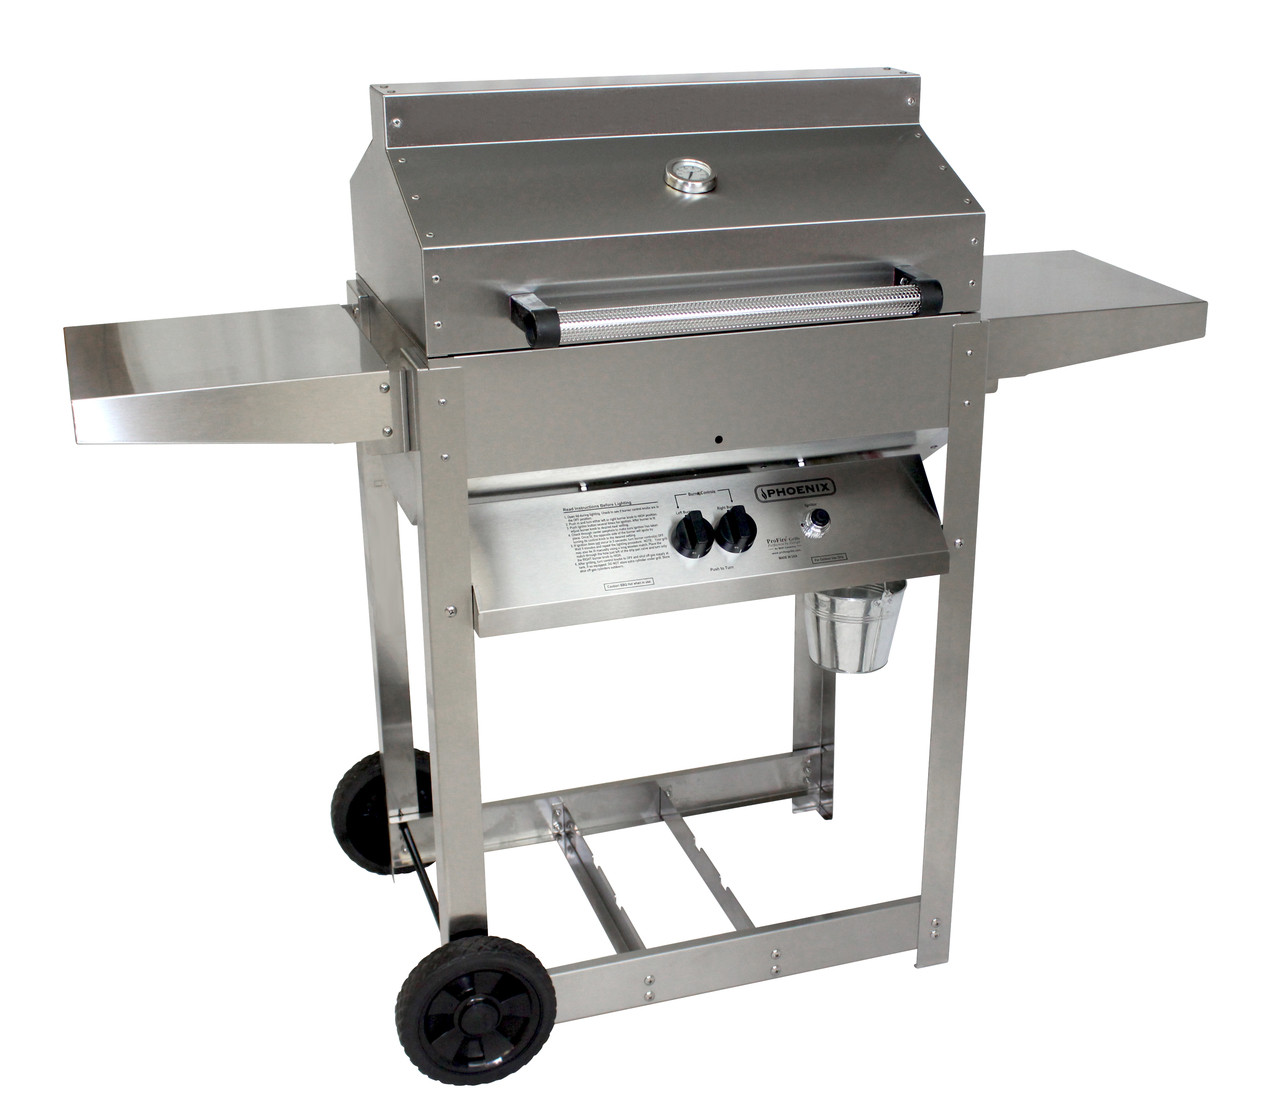 Napoleon Lex485rsib Propane Bbq Phoenix Grill Sd Stainless Steel Propane Gas Riveted Grill Head On Stainless Steel Cart